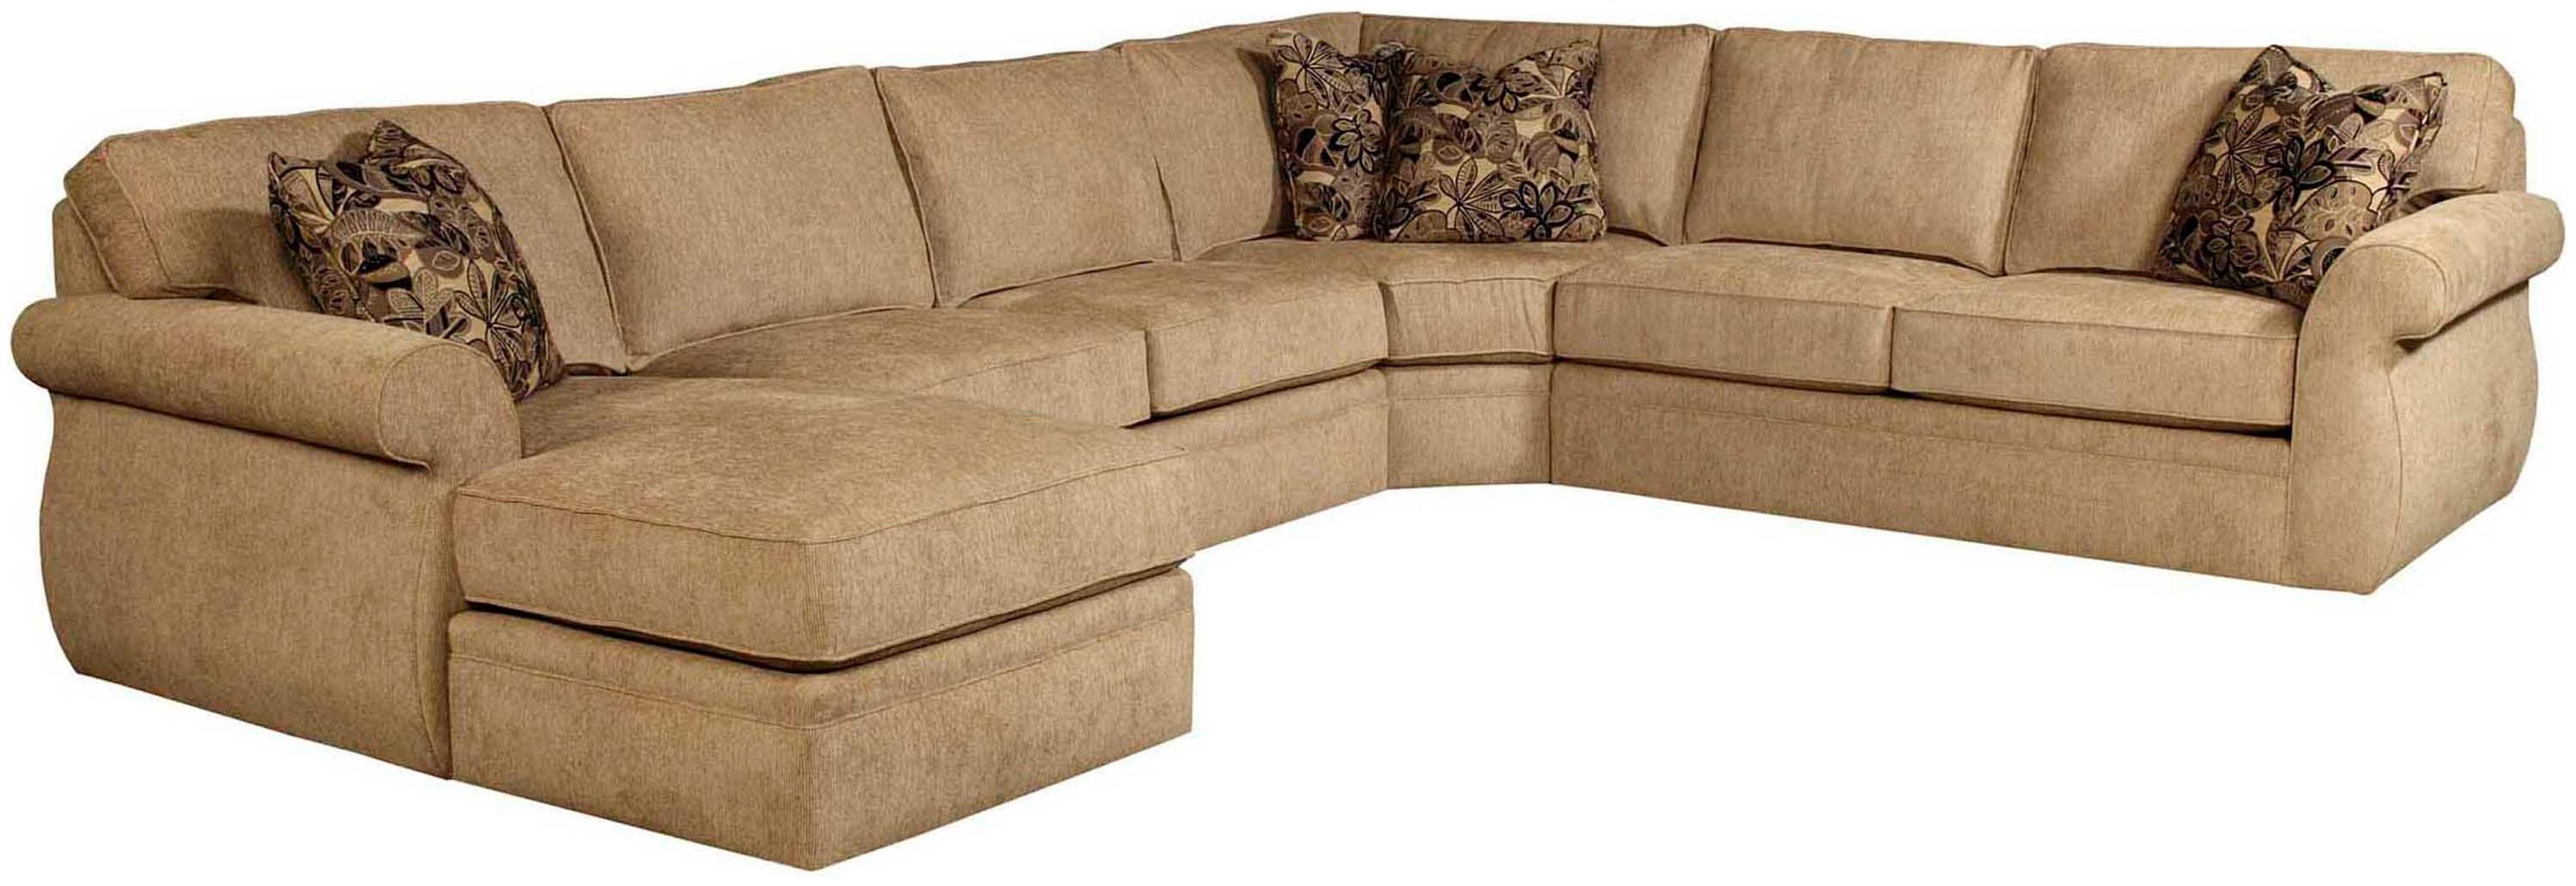 Furniture: Modern Chaise Sectional With Classic Comfortable Design Regarding Long Sectional Sofa With Chaise (Image 4 of 20)